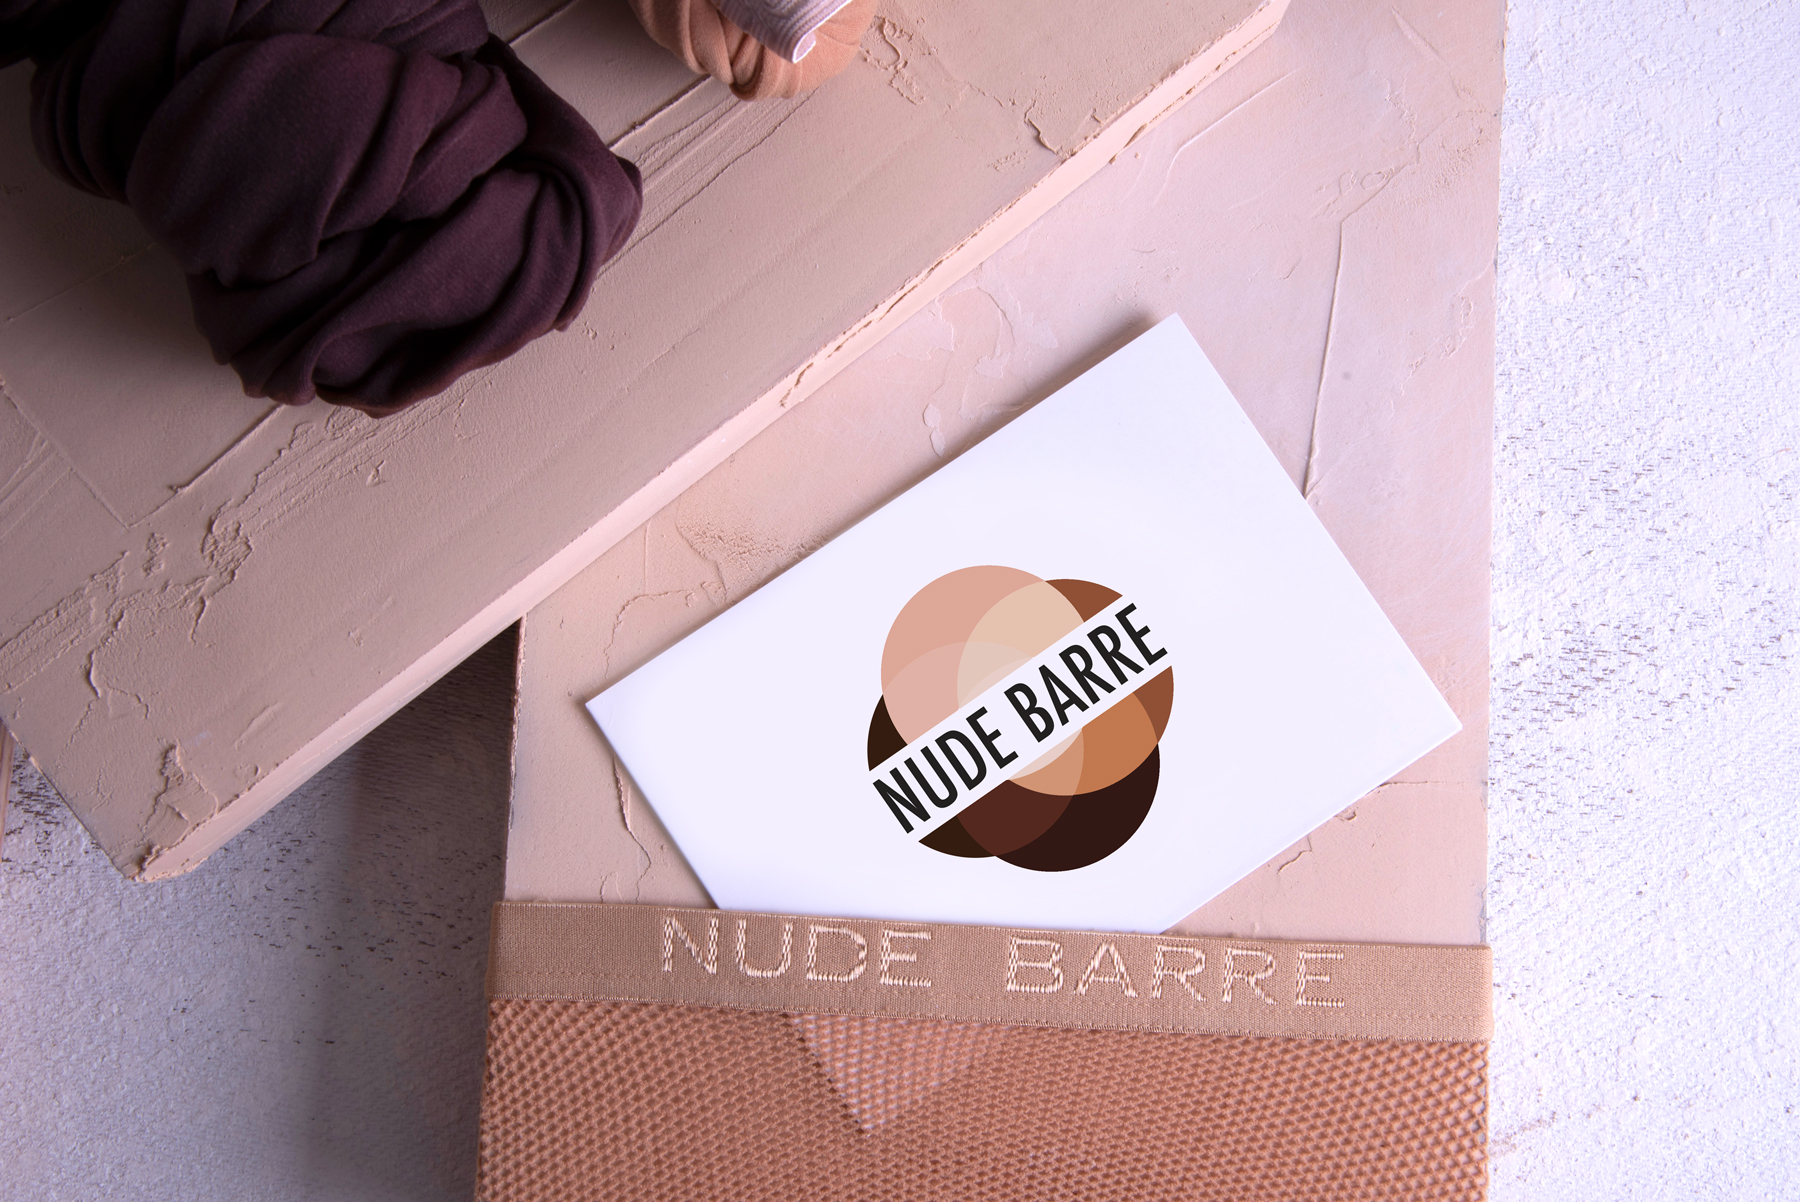 Nude Barre Brochure designed and photographed by Hire Henri Creative